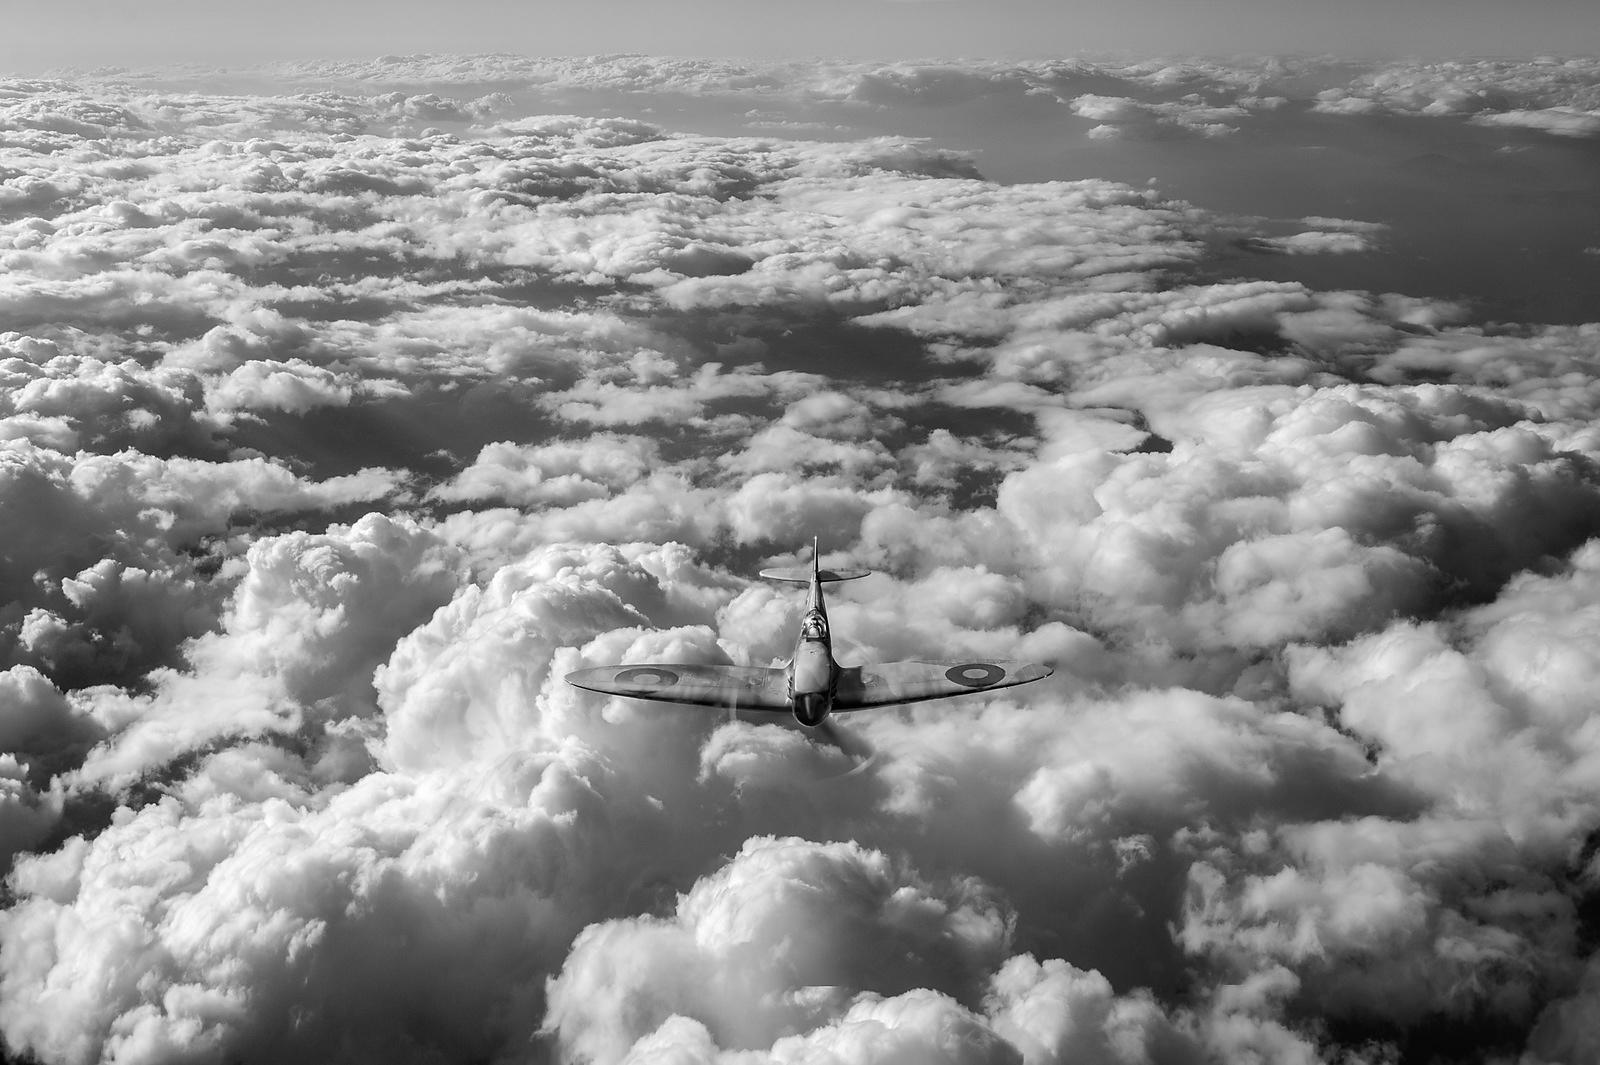 High flight Spitfire black and white version